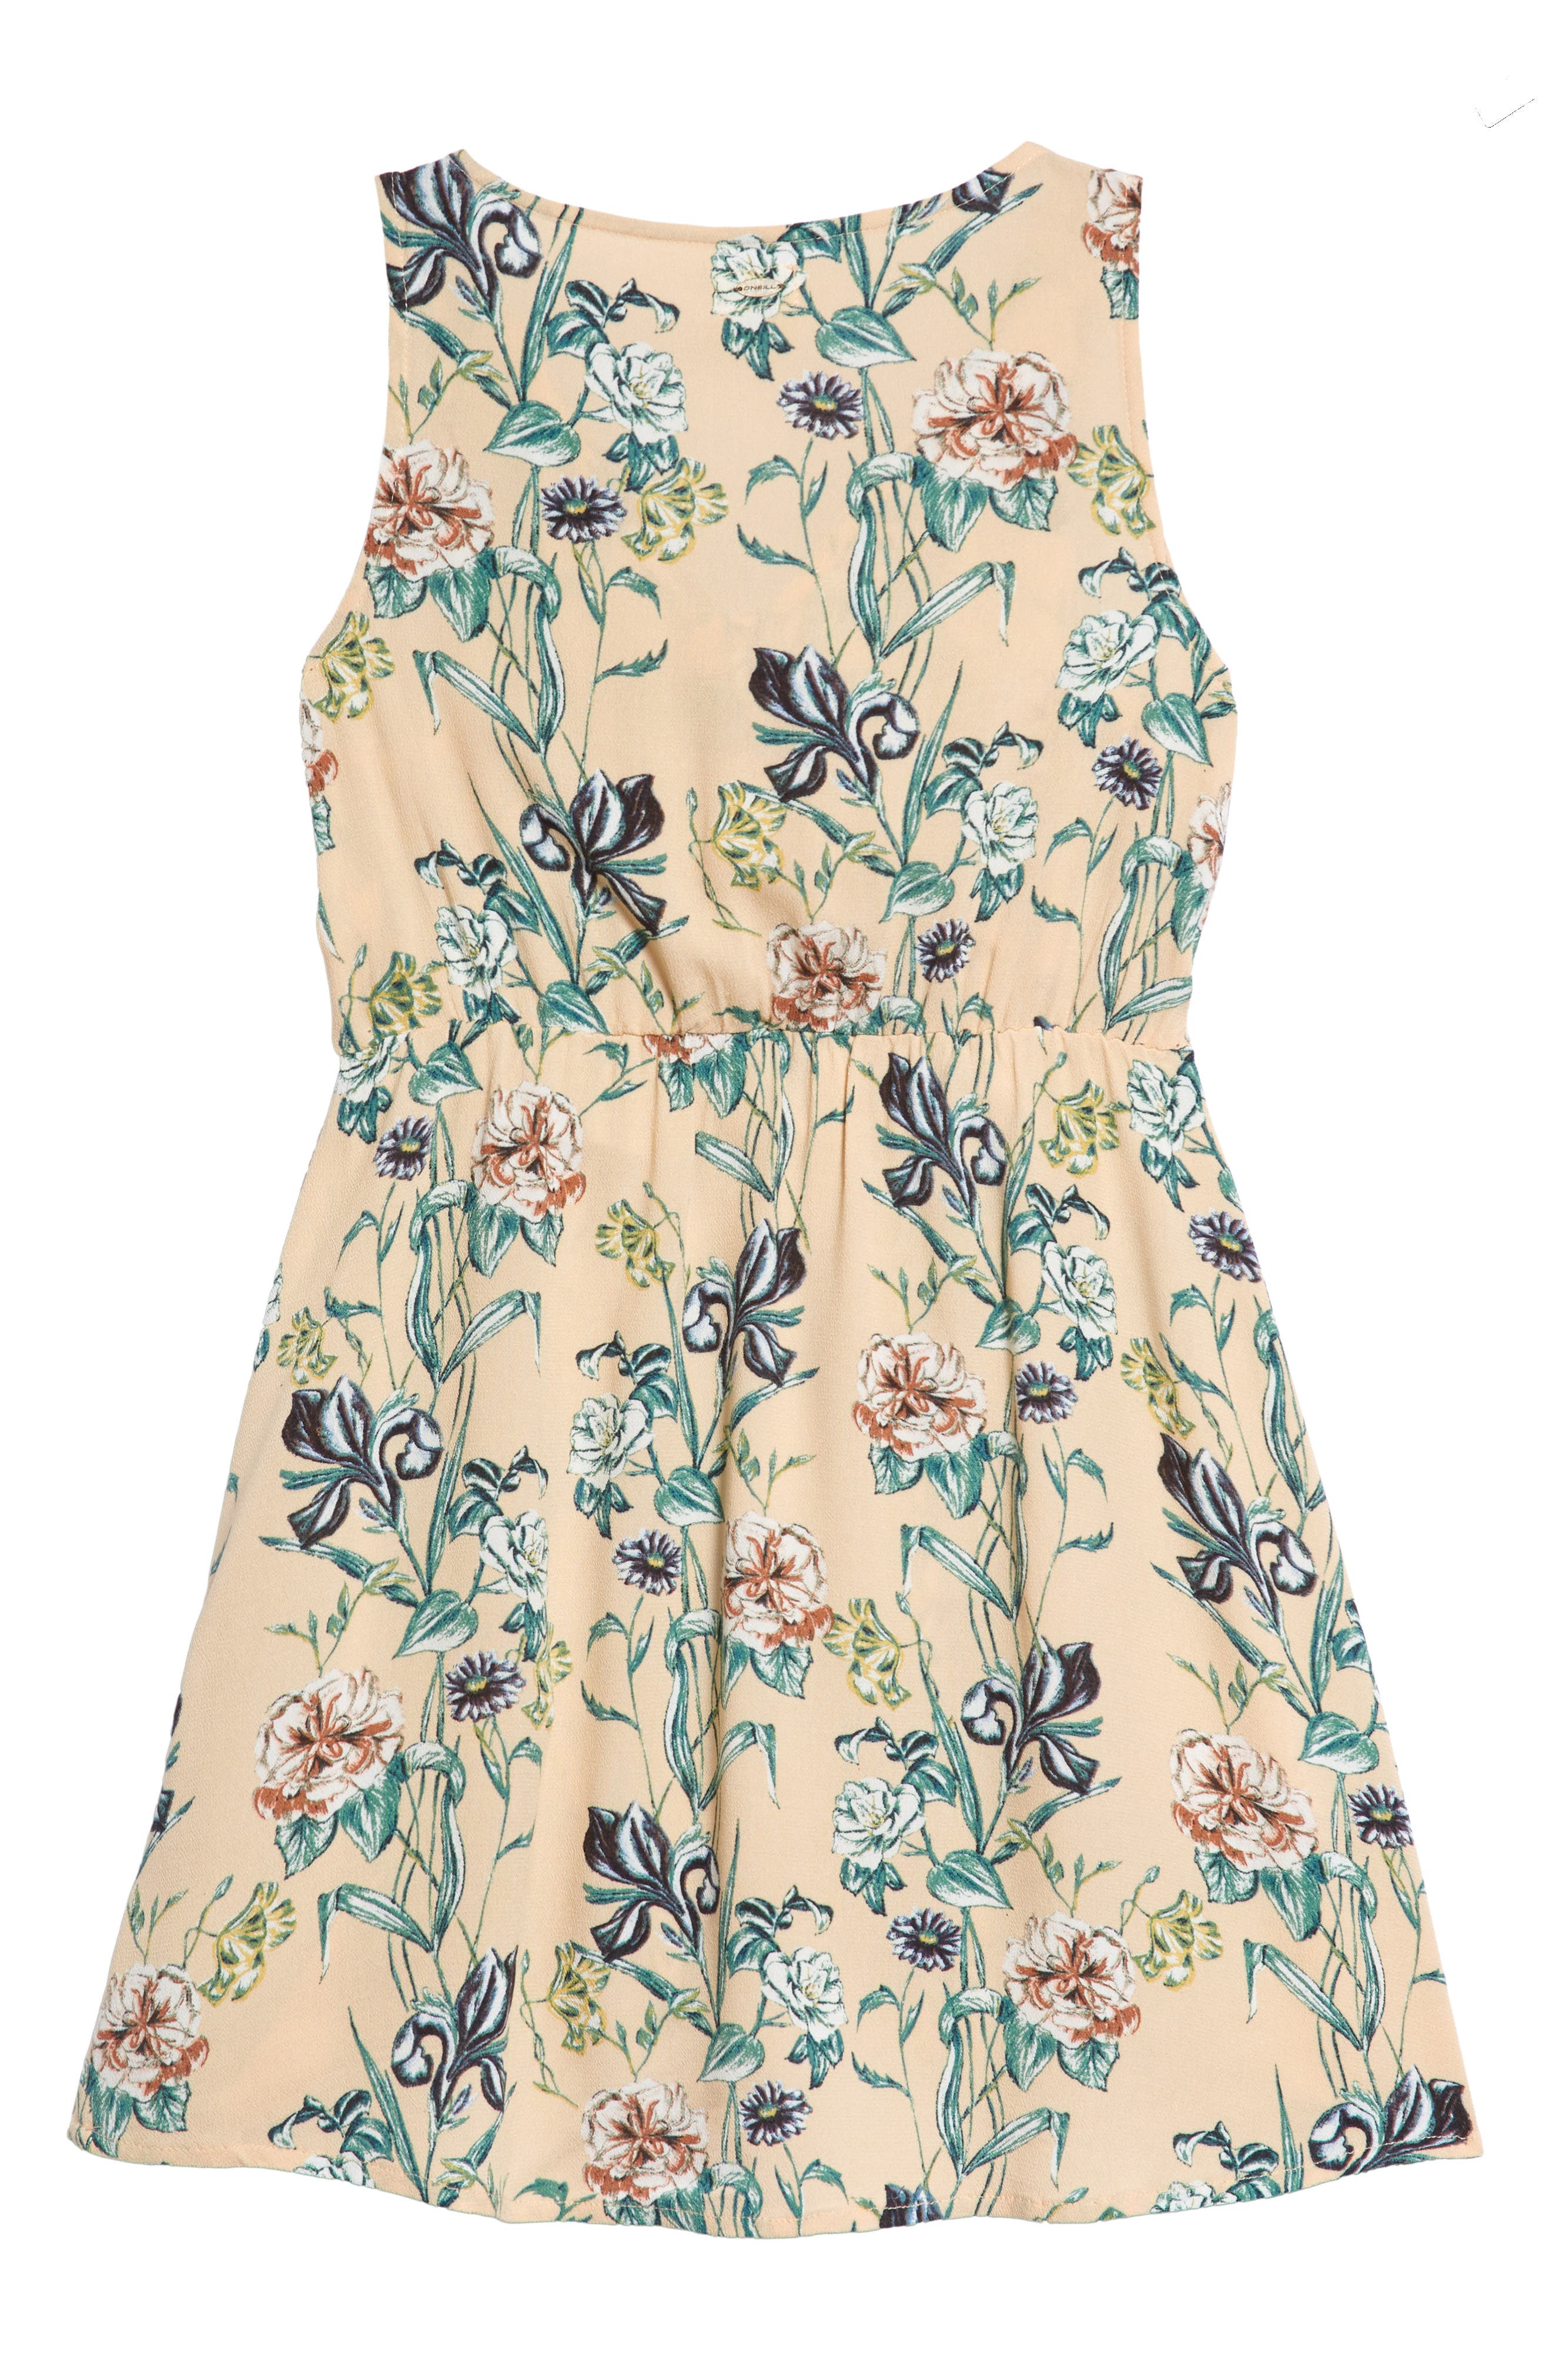 Arky Knotted Floral Print Dress,                             Alternate thumbnail 2, color,                             900